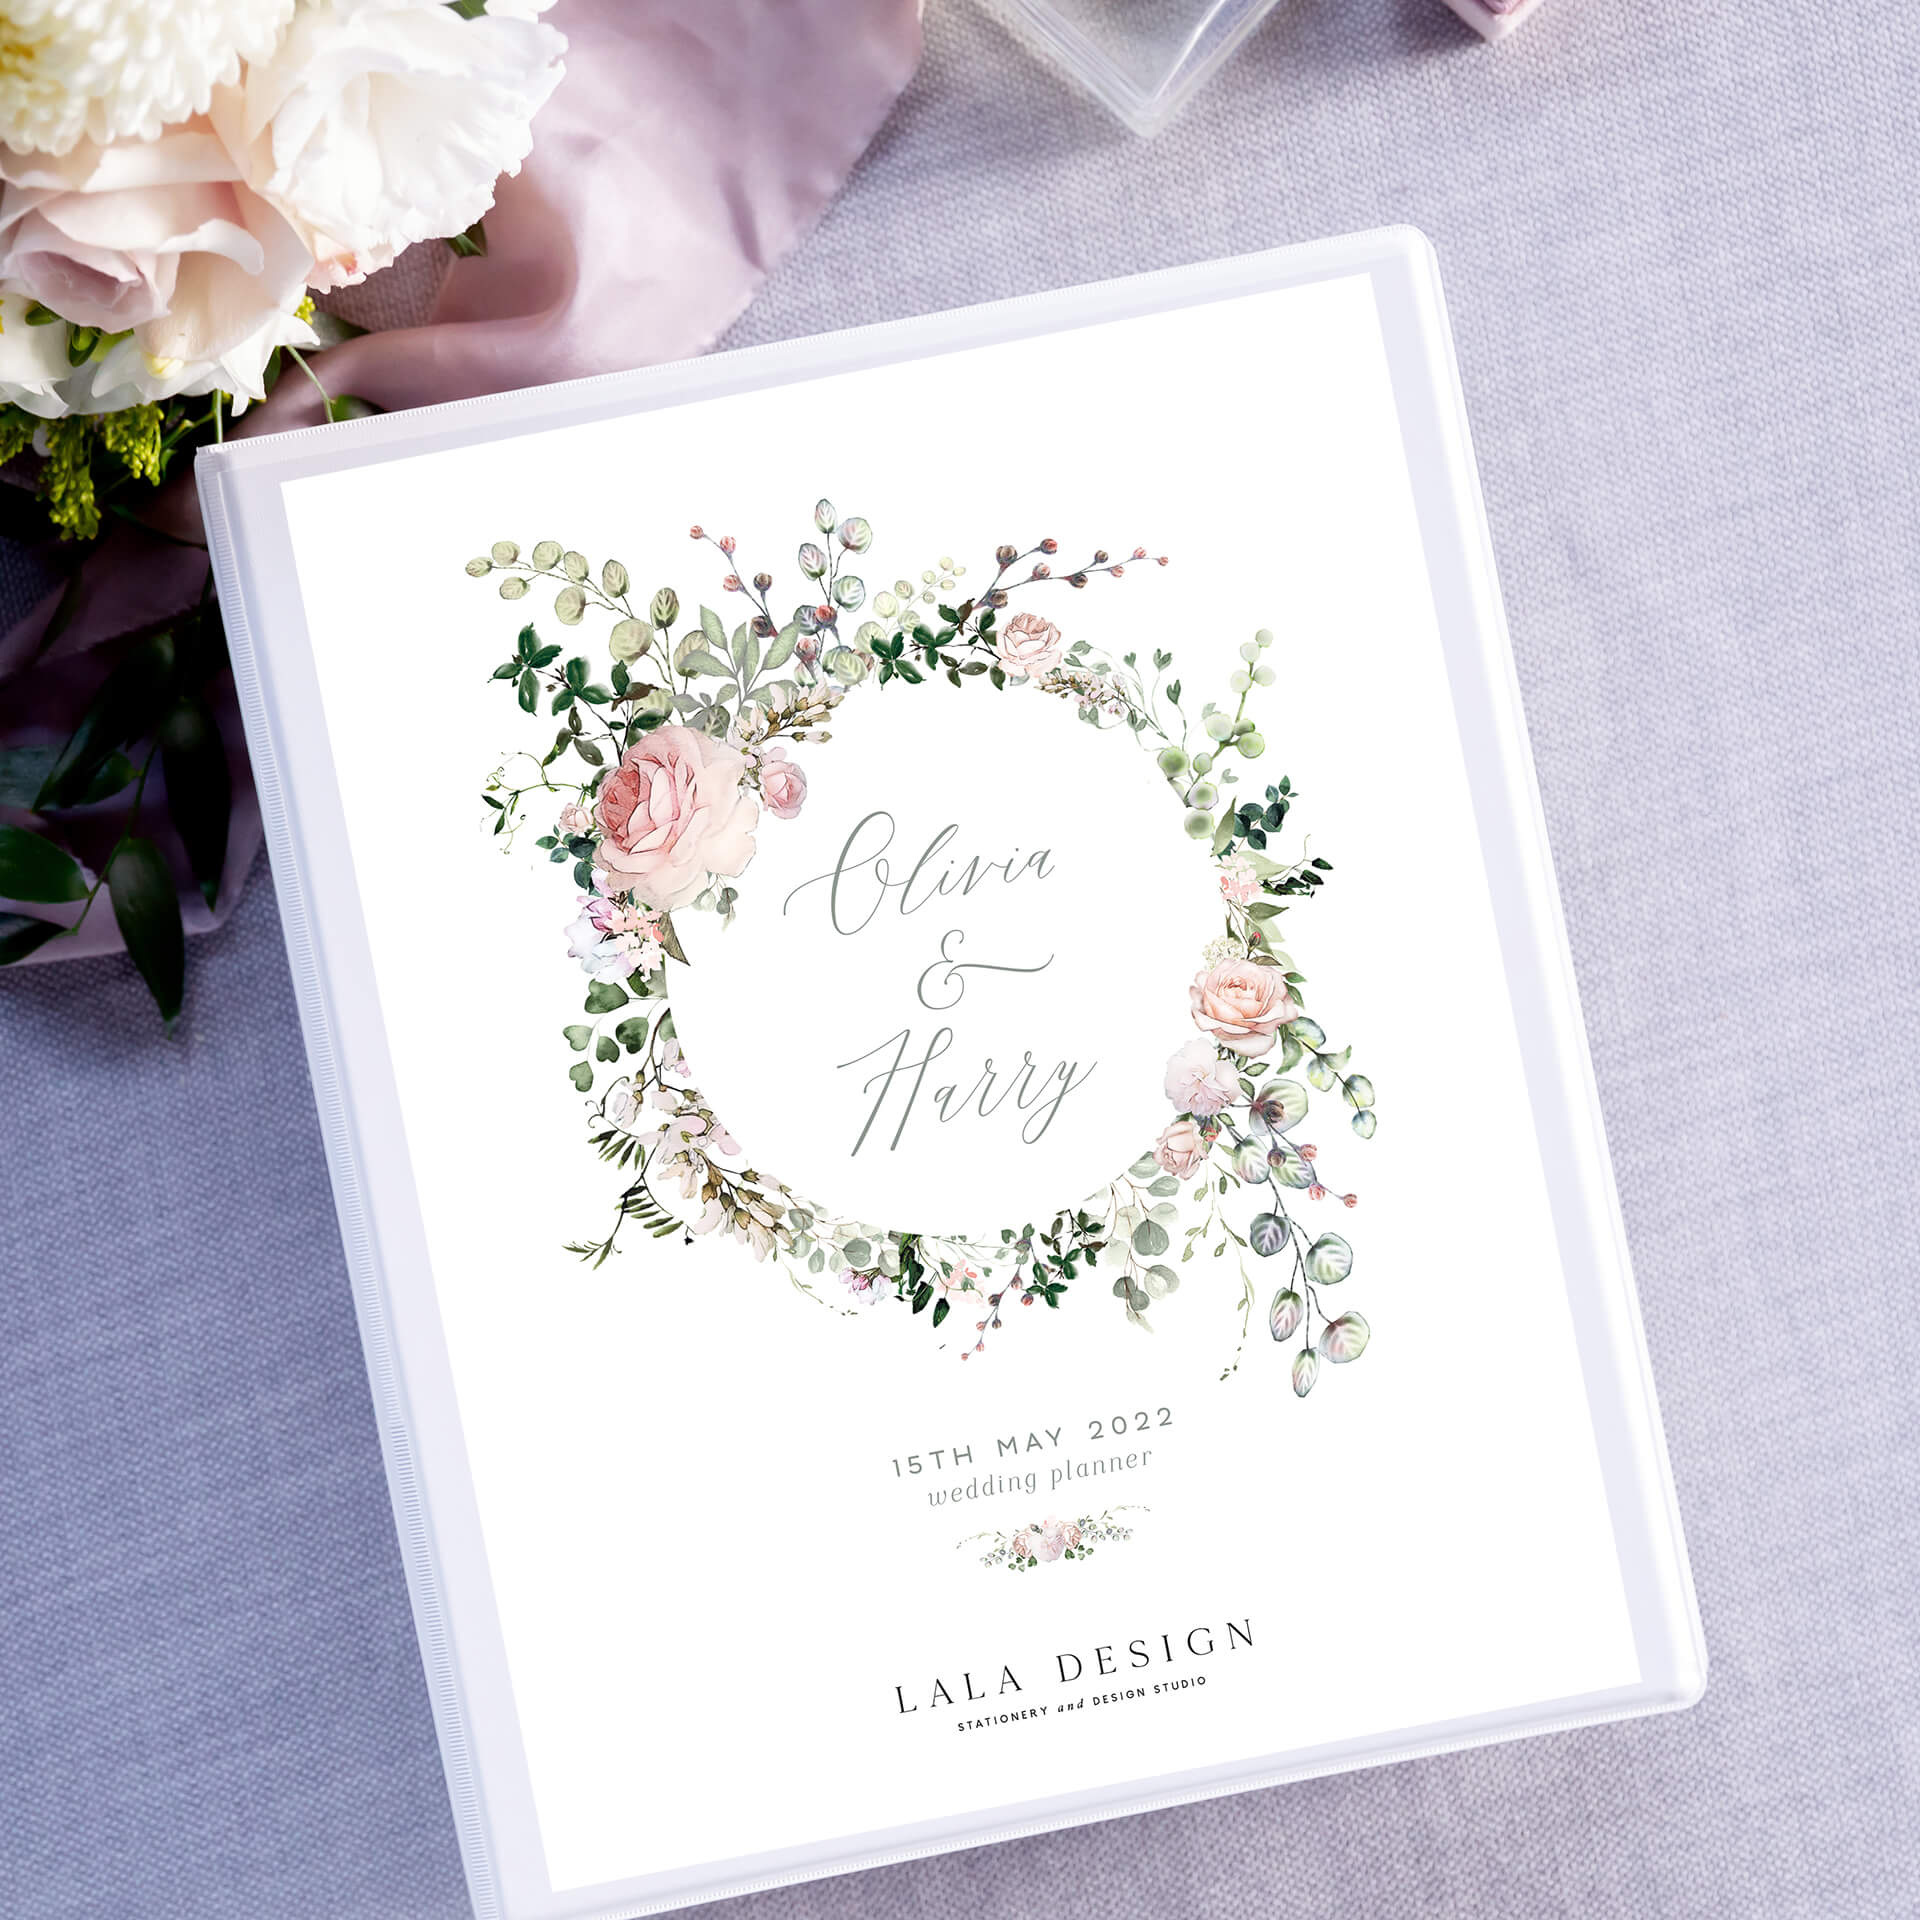 The best wedding planner for Australian weddings | Lala Design wedding planner book Perth WA